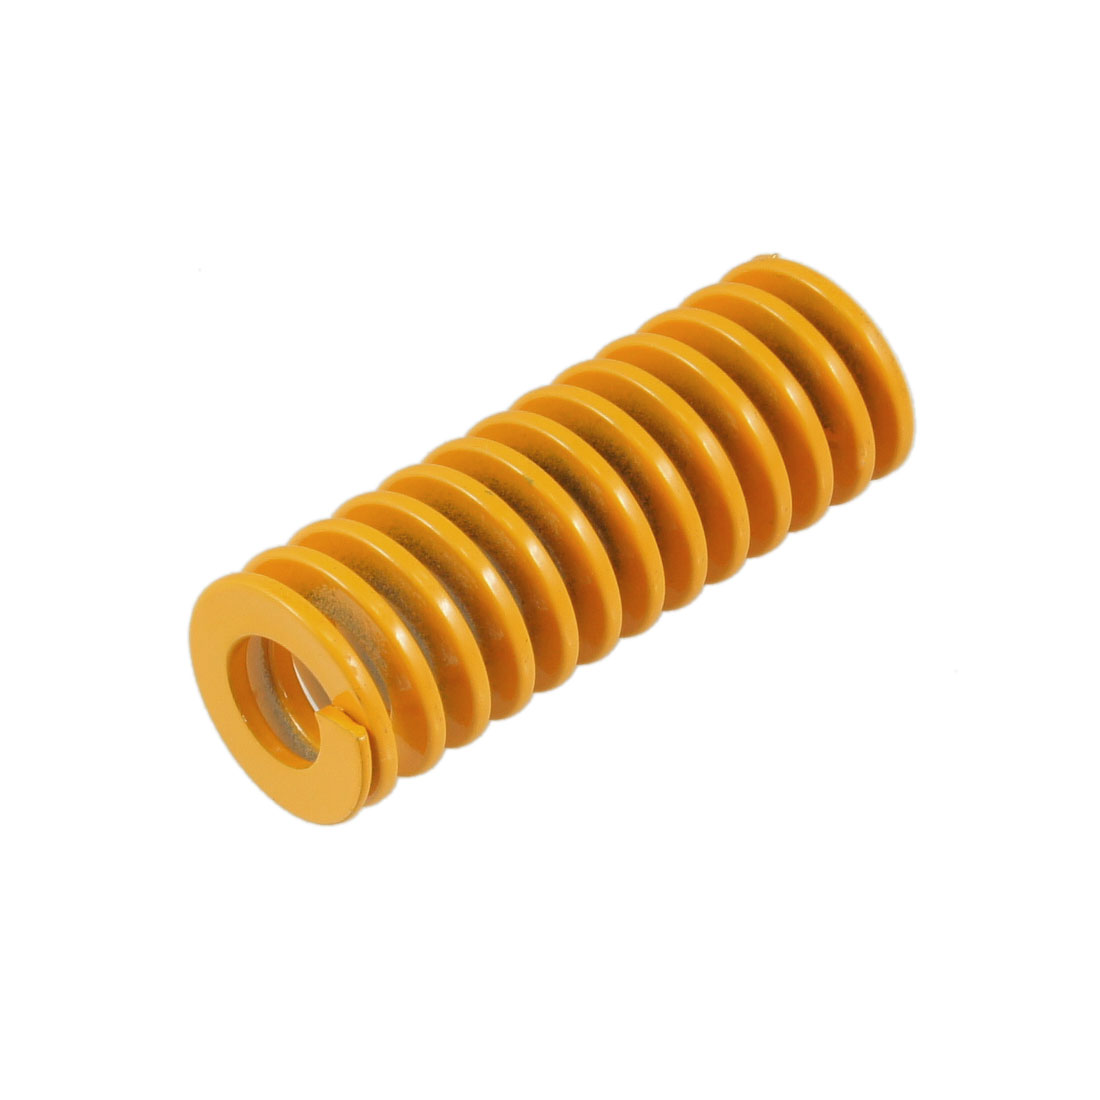 25mm x 13mm x 75mm Rectangular Section Mold Mould Die Spring